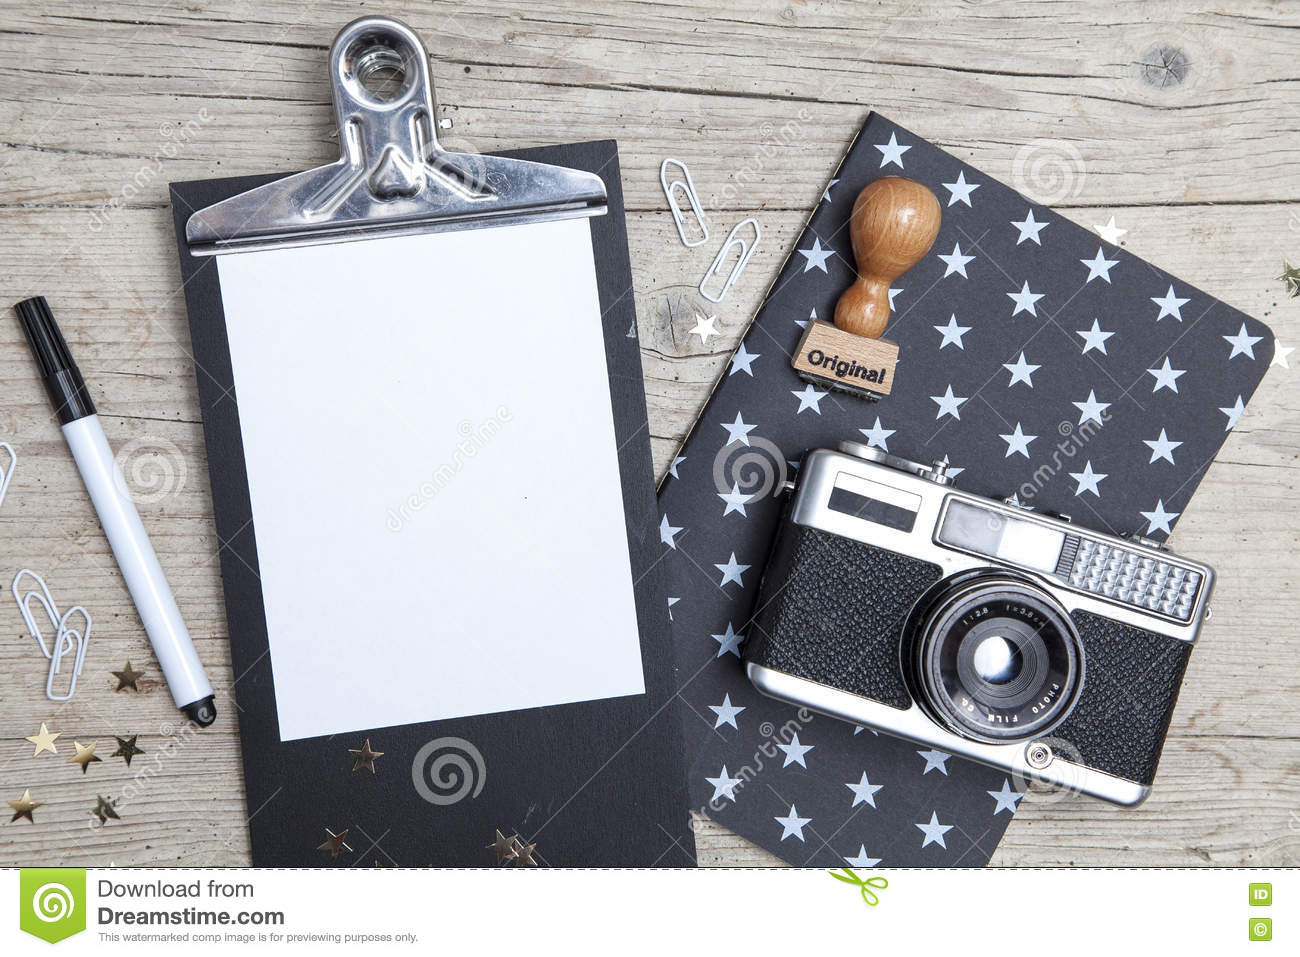 Creative Christmas Card With An Old Photo Camera Stock Image - Image ...